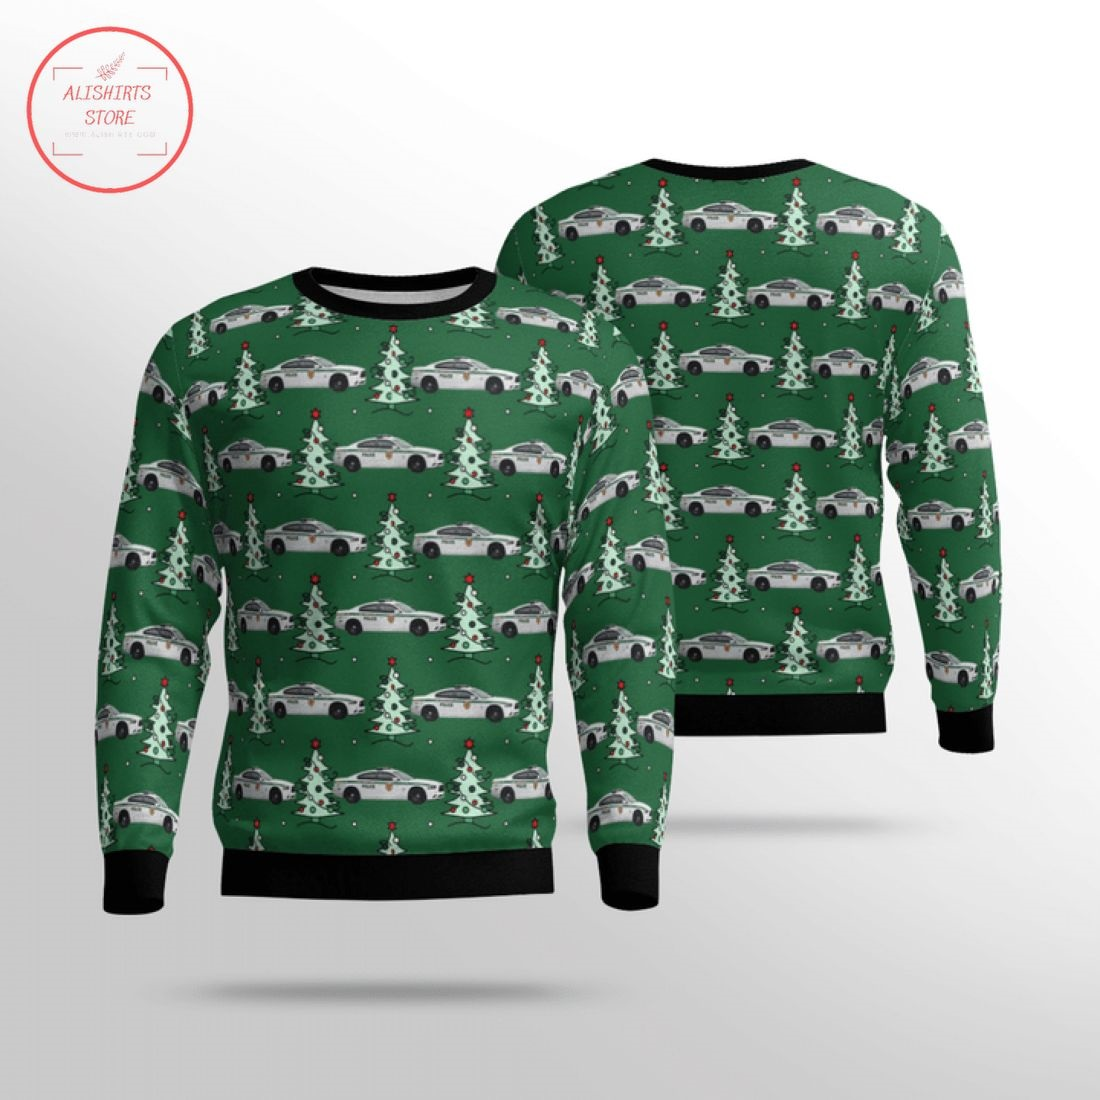 Miami Dade Police Department Ugly Christmas Sweater